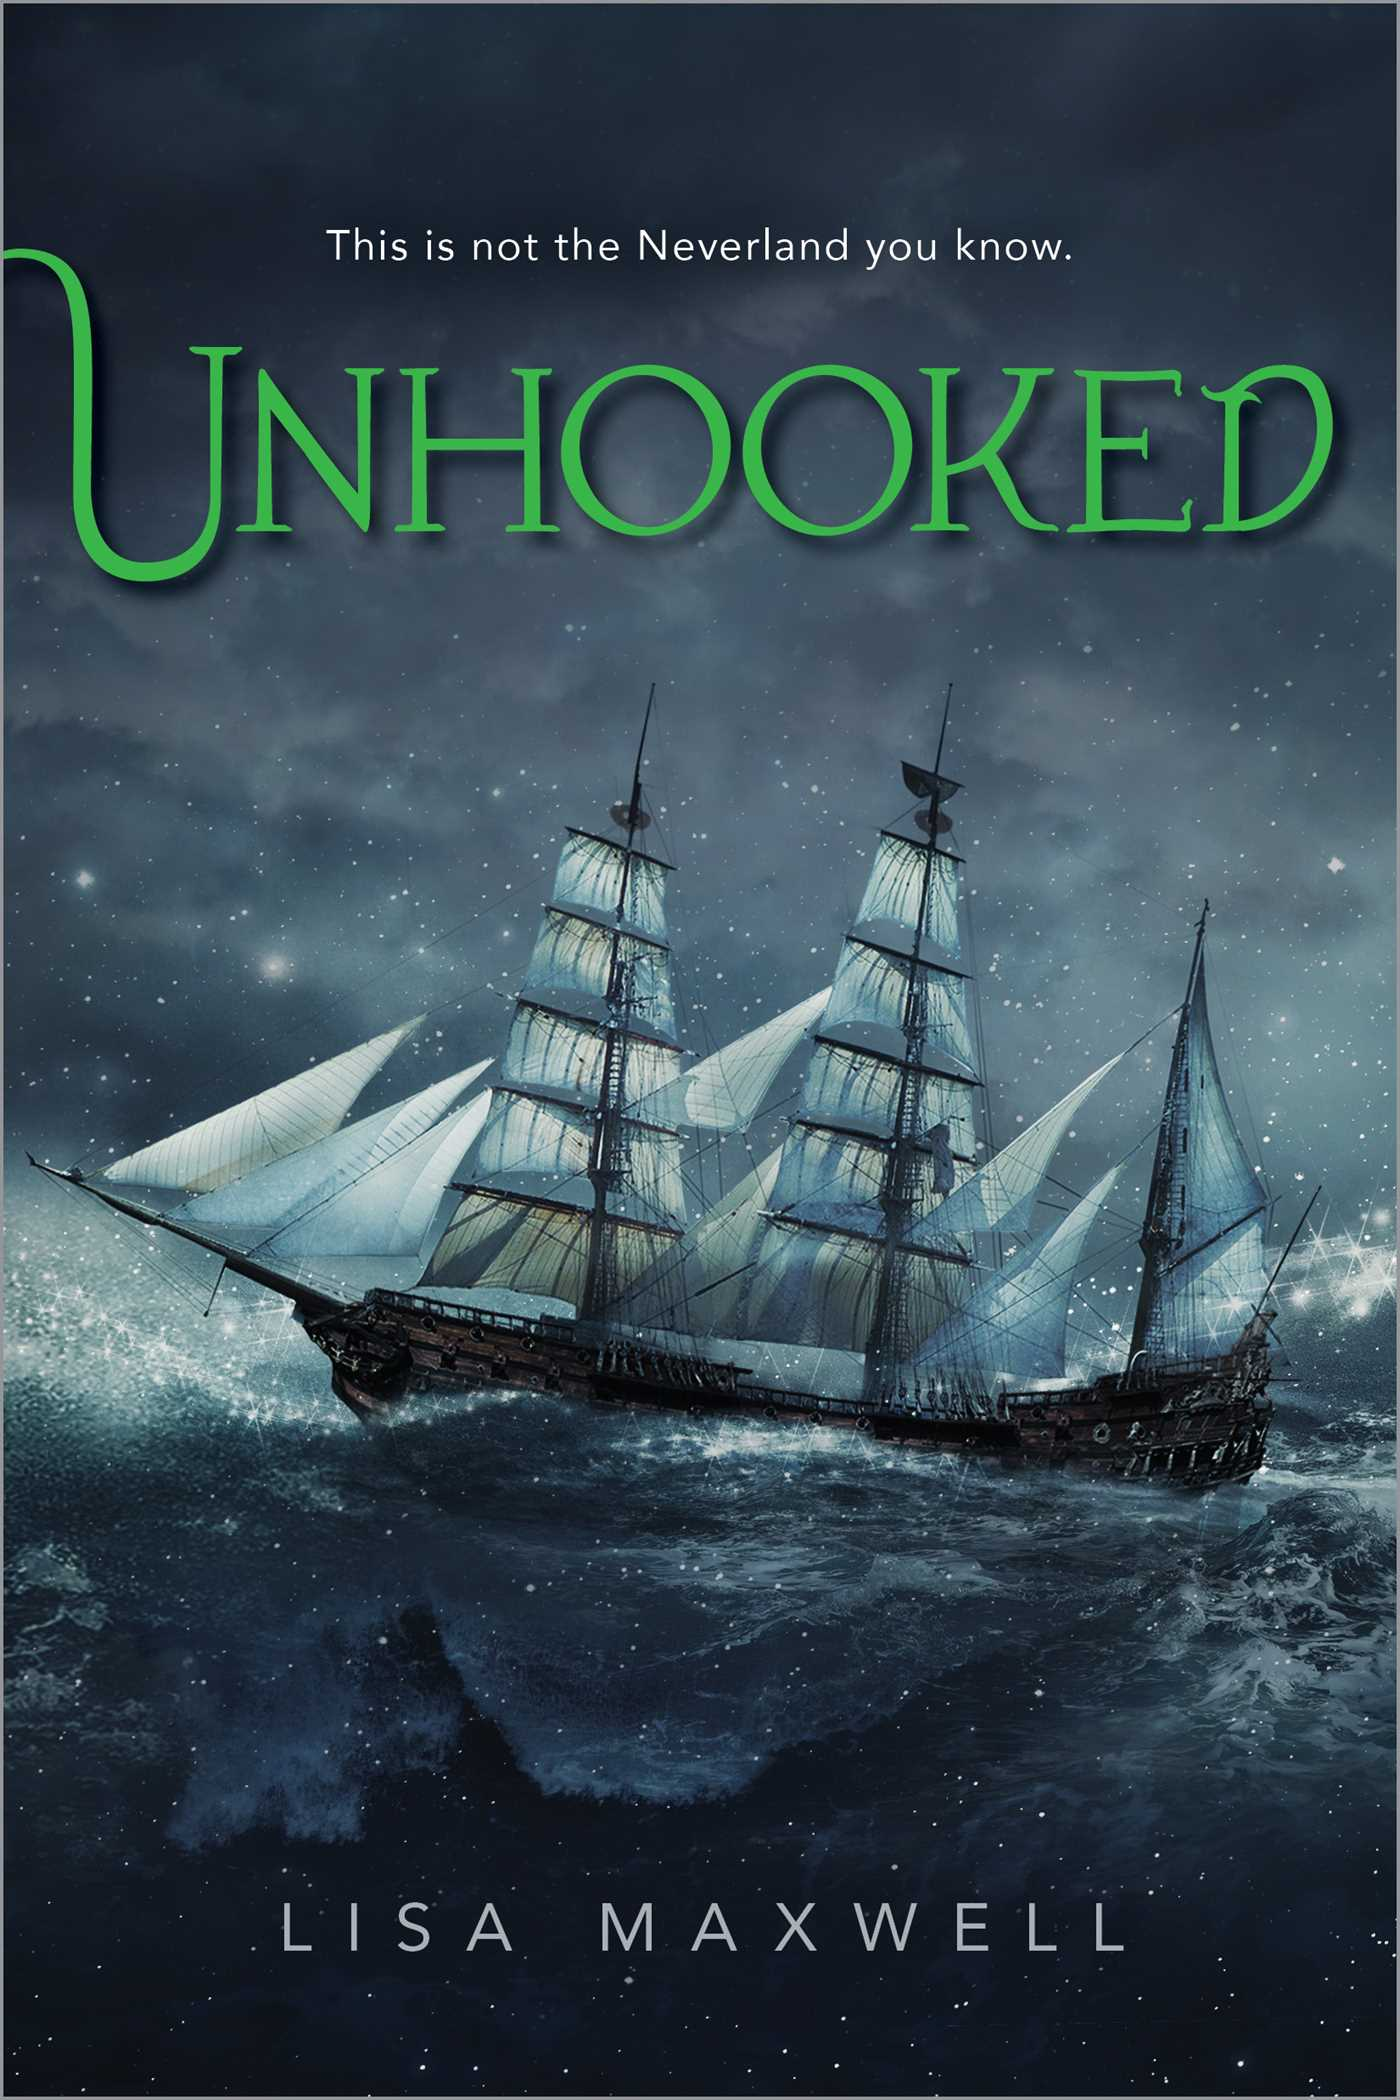 Unhooked 9781481432054 hr